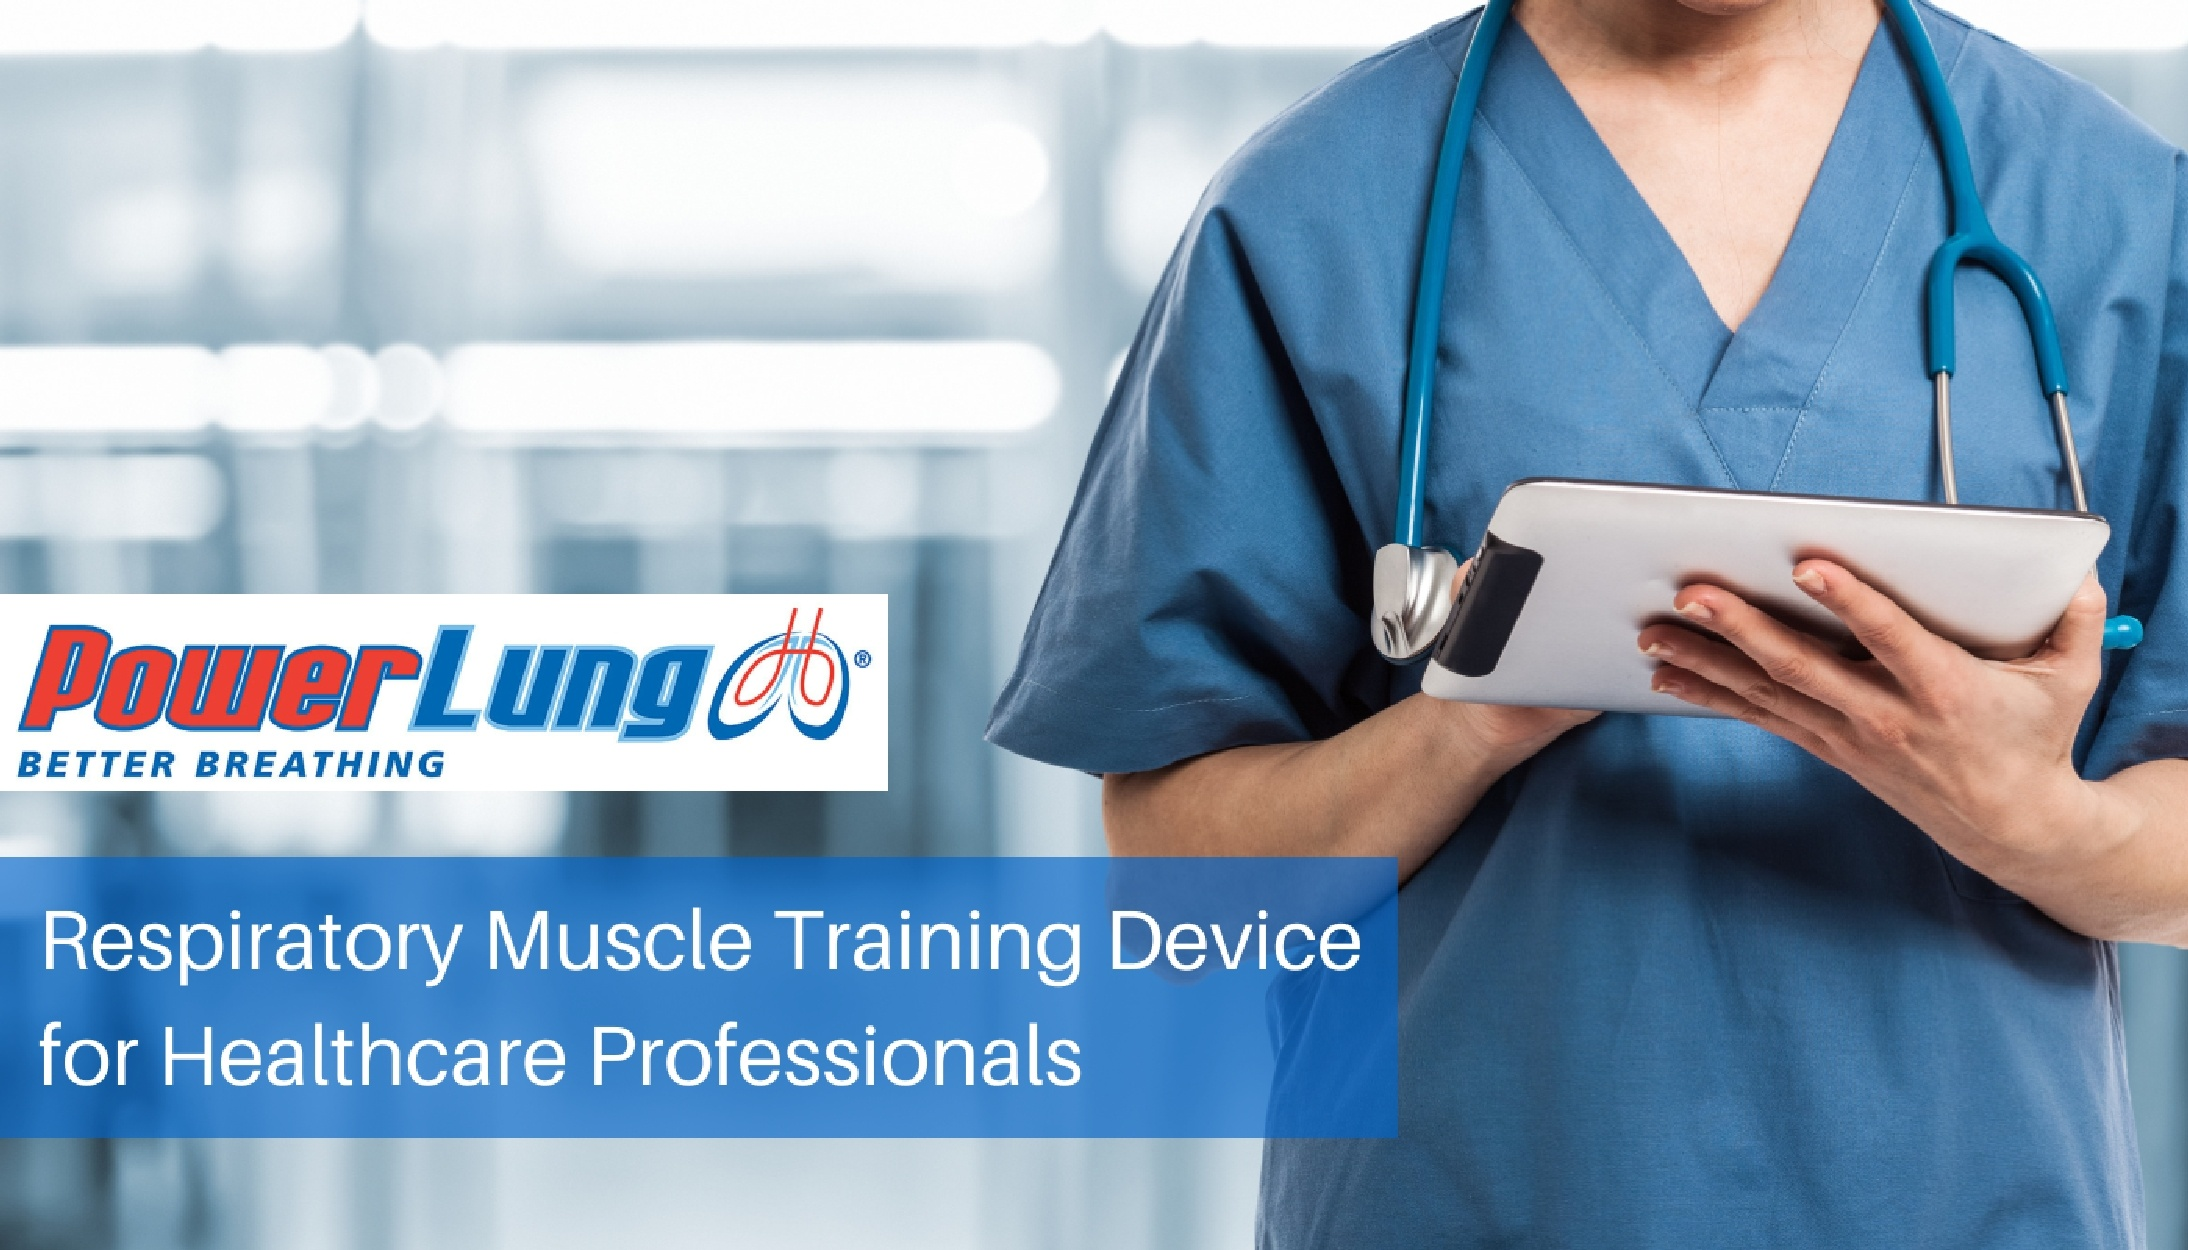 PowerLung - Respiratory Muscle Training Device for Healthcare Professionals.jpg